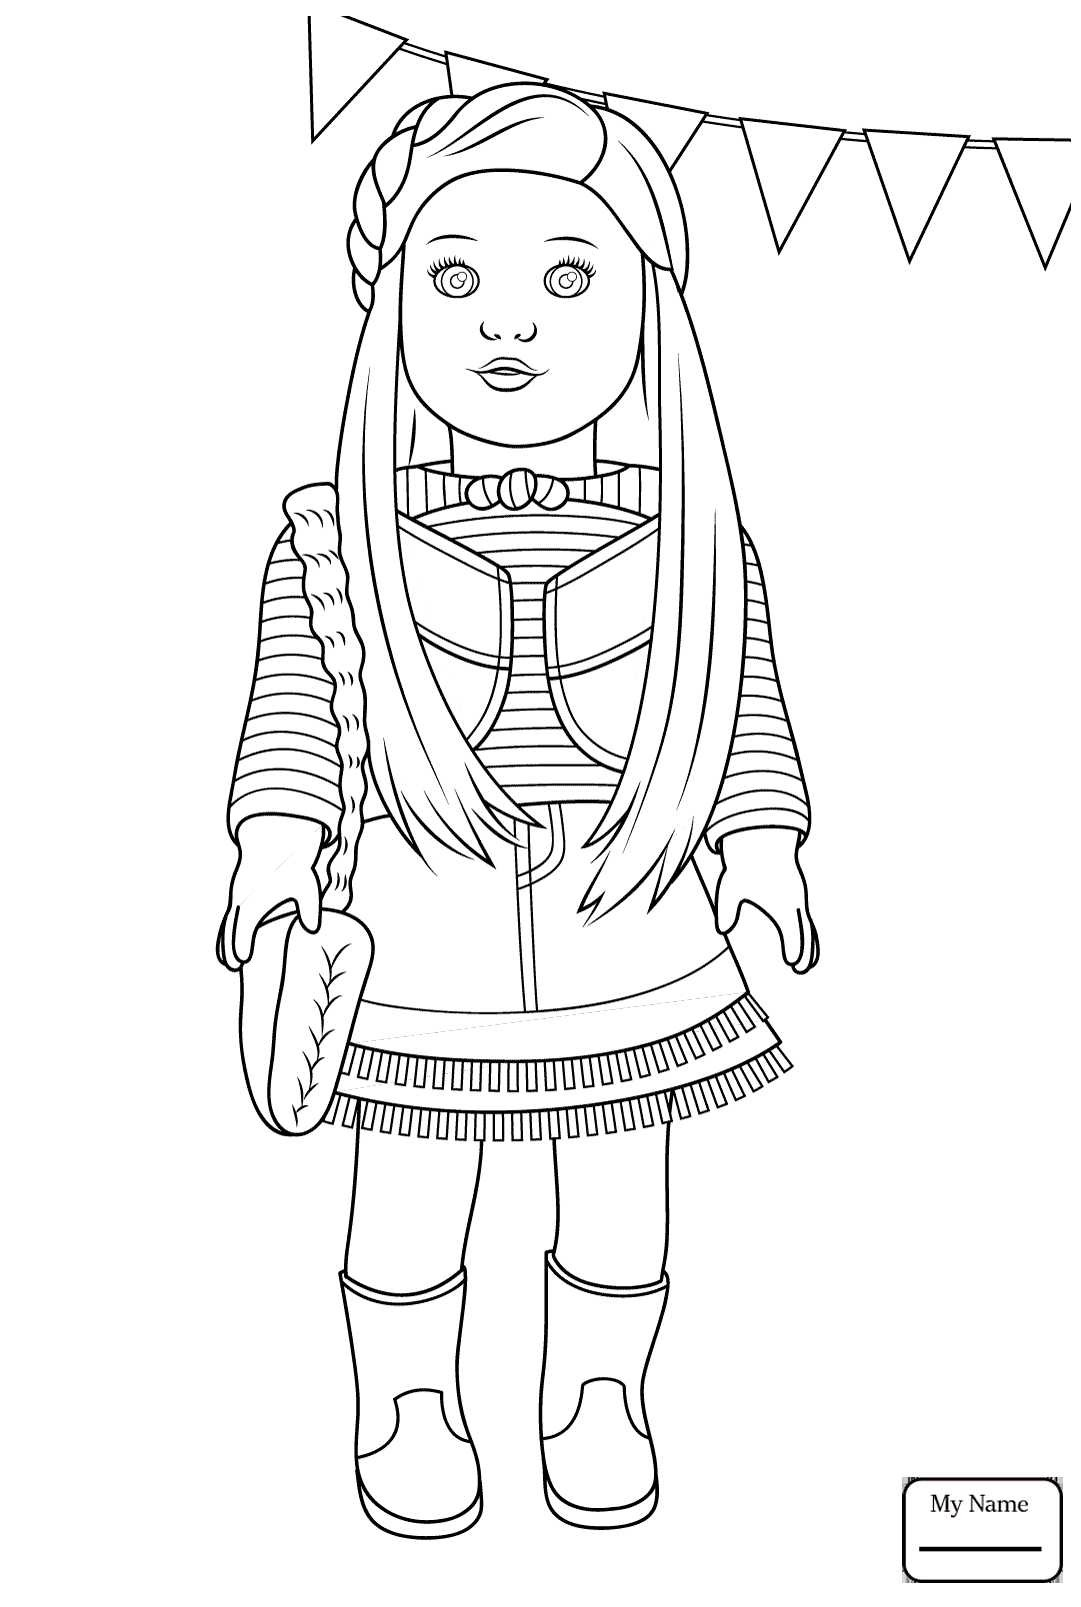 American Girl Doll Coloring Pages : american, coloring, pages, American, Coloring, Pages, Coloring.rocks!